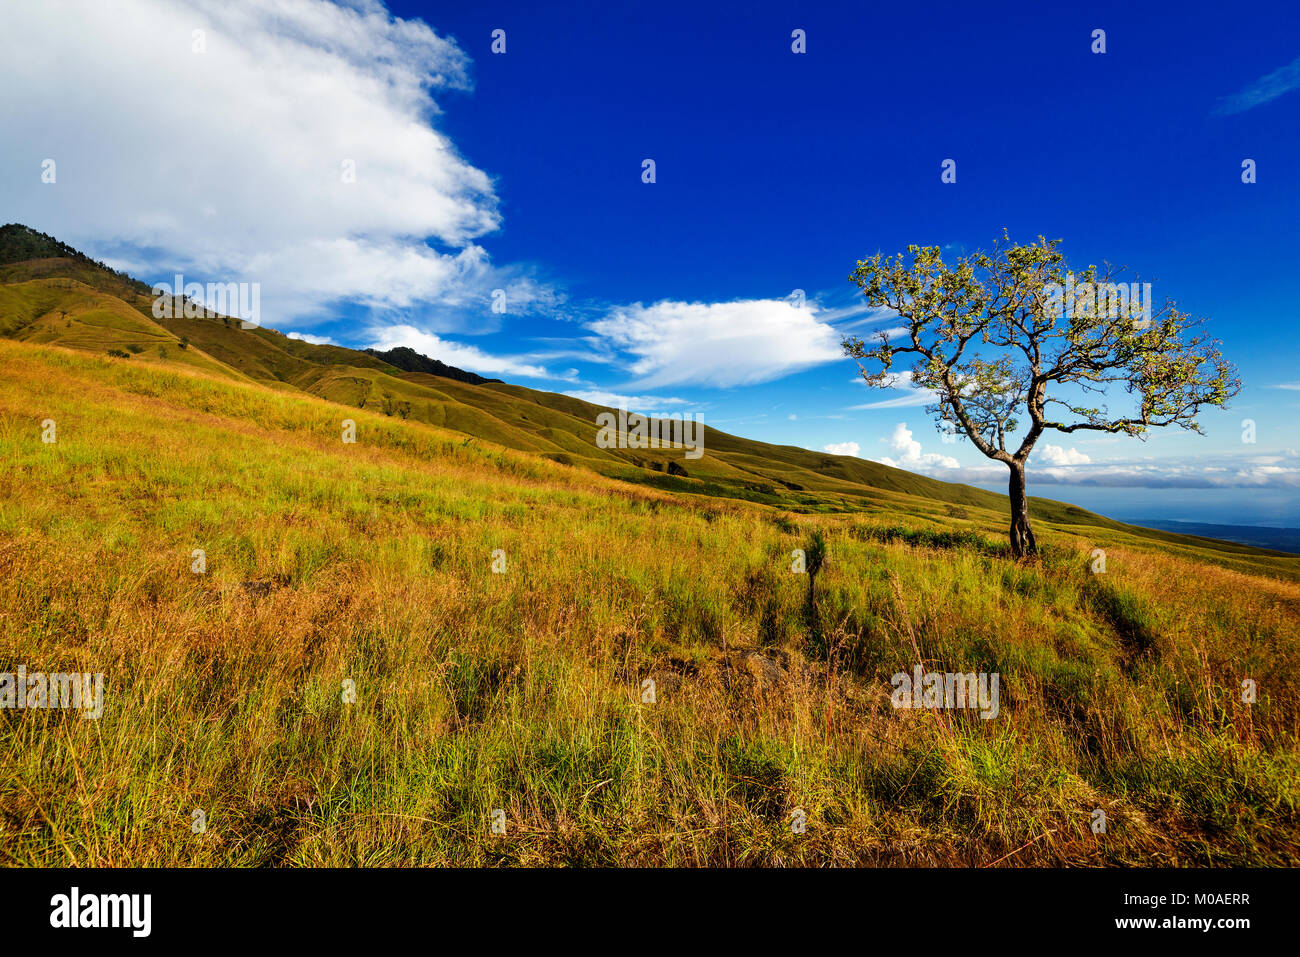 Lone tree and moving clouds in mountain, Indonesia - Stock Image